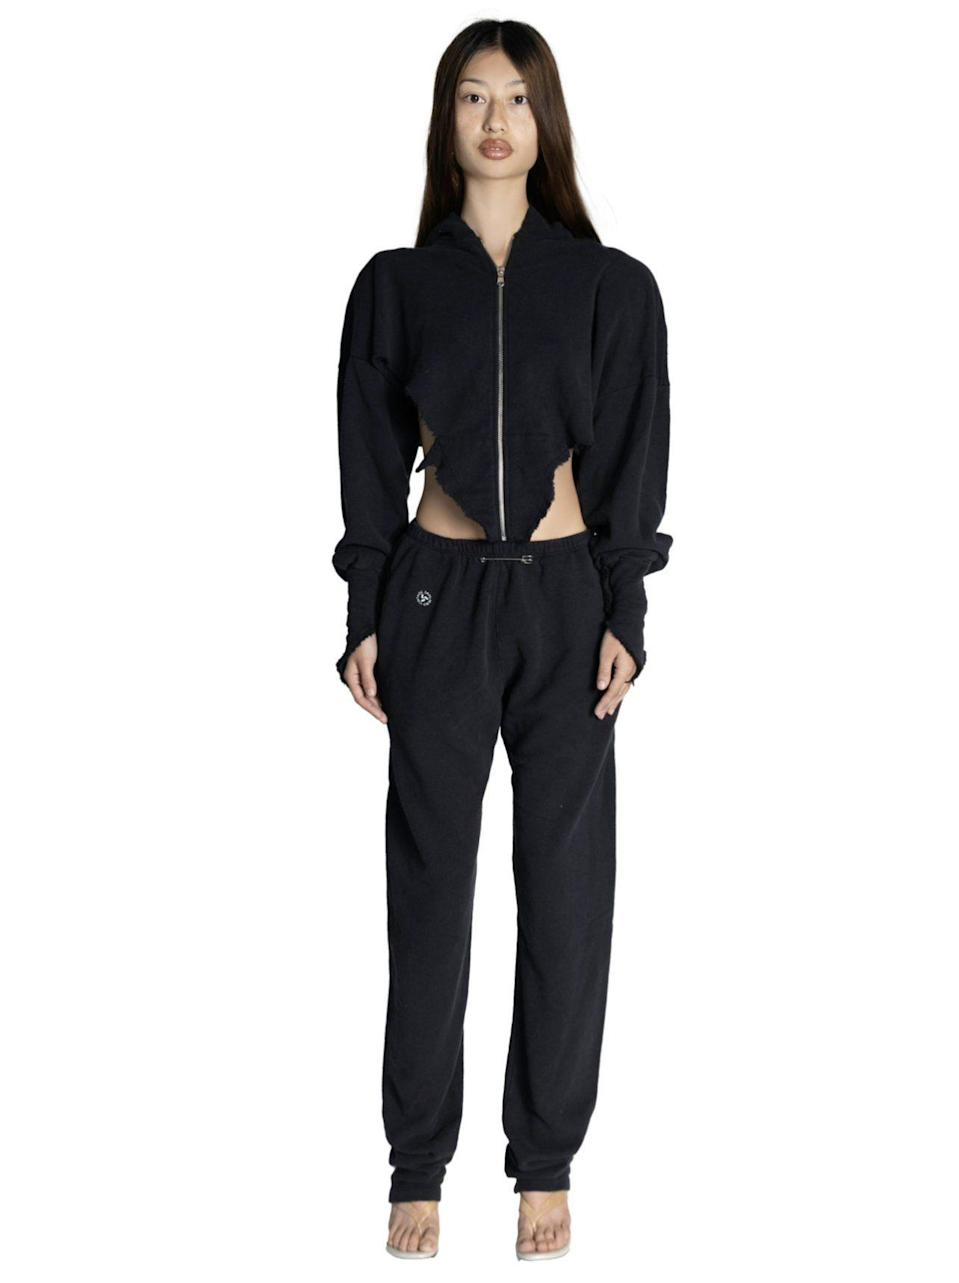 """<p><strong>Sami Miro Vintage</strong></p><p>samimirovintage.com</p><p><strong>$285.00</strong></p><p><a href=""""https://samimirovintage.com/collections/fw20-bottoms/products/sweatpants-in-black"""" rel=""""nofollow noopener"""" target=""""_blank"""" data-ylk=""""slk:Shop Now"""" class=""""link rapid-noclick-resp"""">Shop Now</a></p><p>These sweats are so soft and made with up-cycled fabric.""""</p>"""